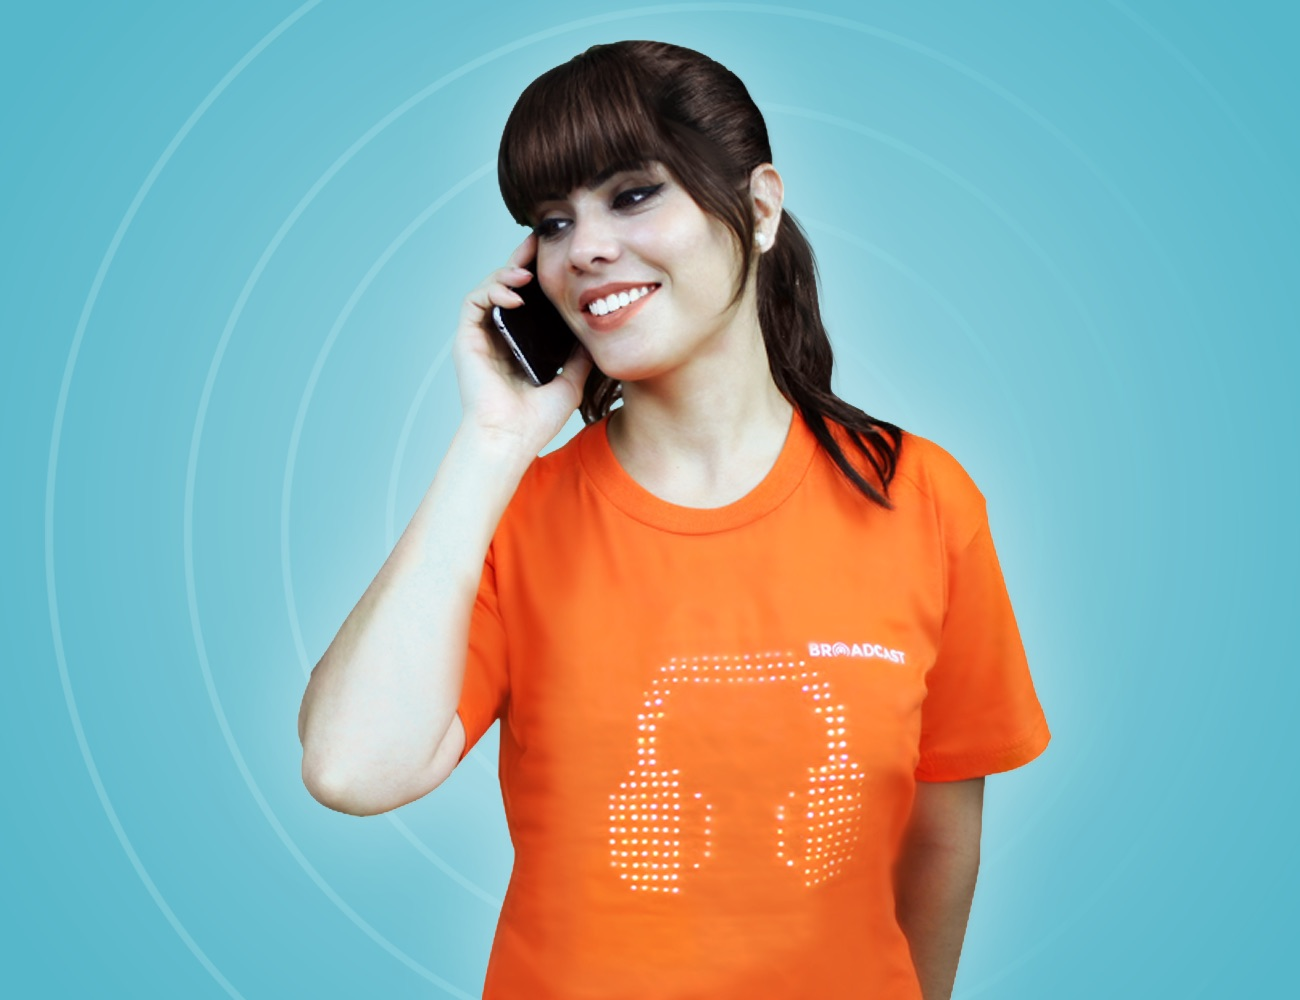 Broadcast – World's First Touch Enabled T-shirt